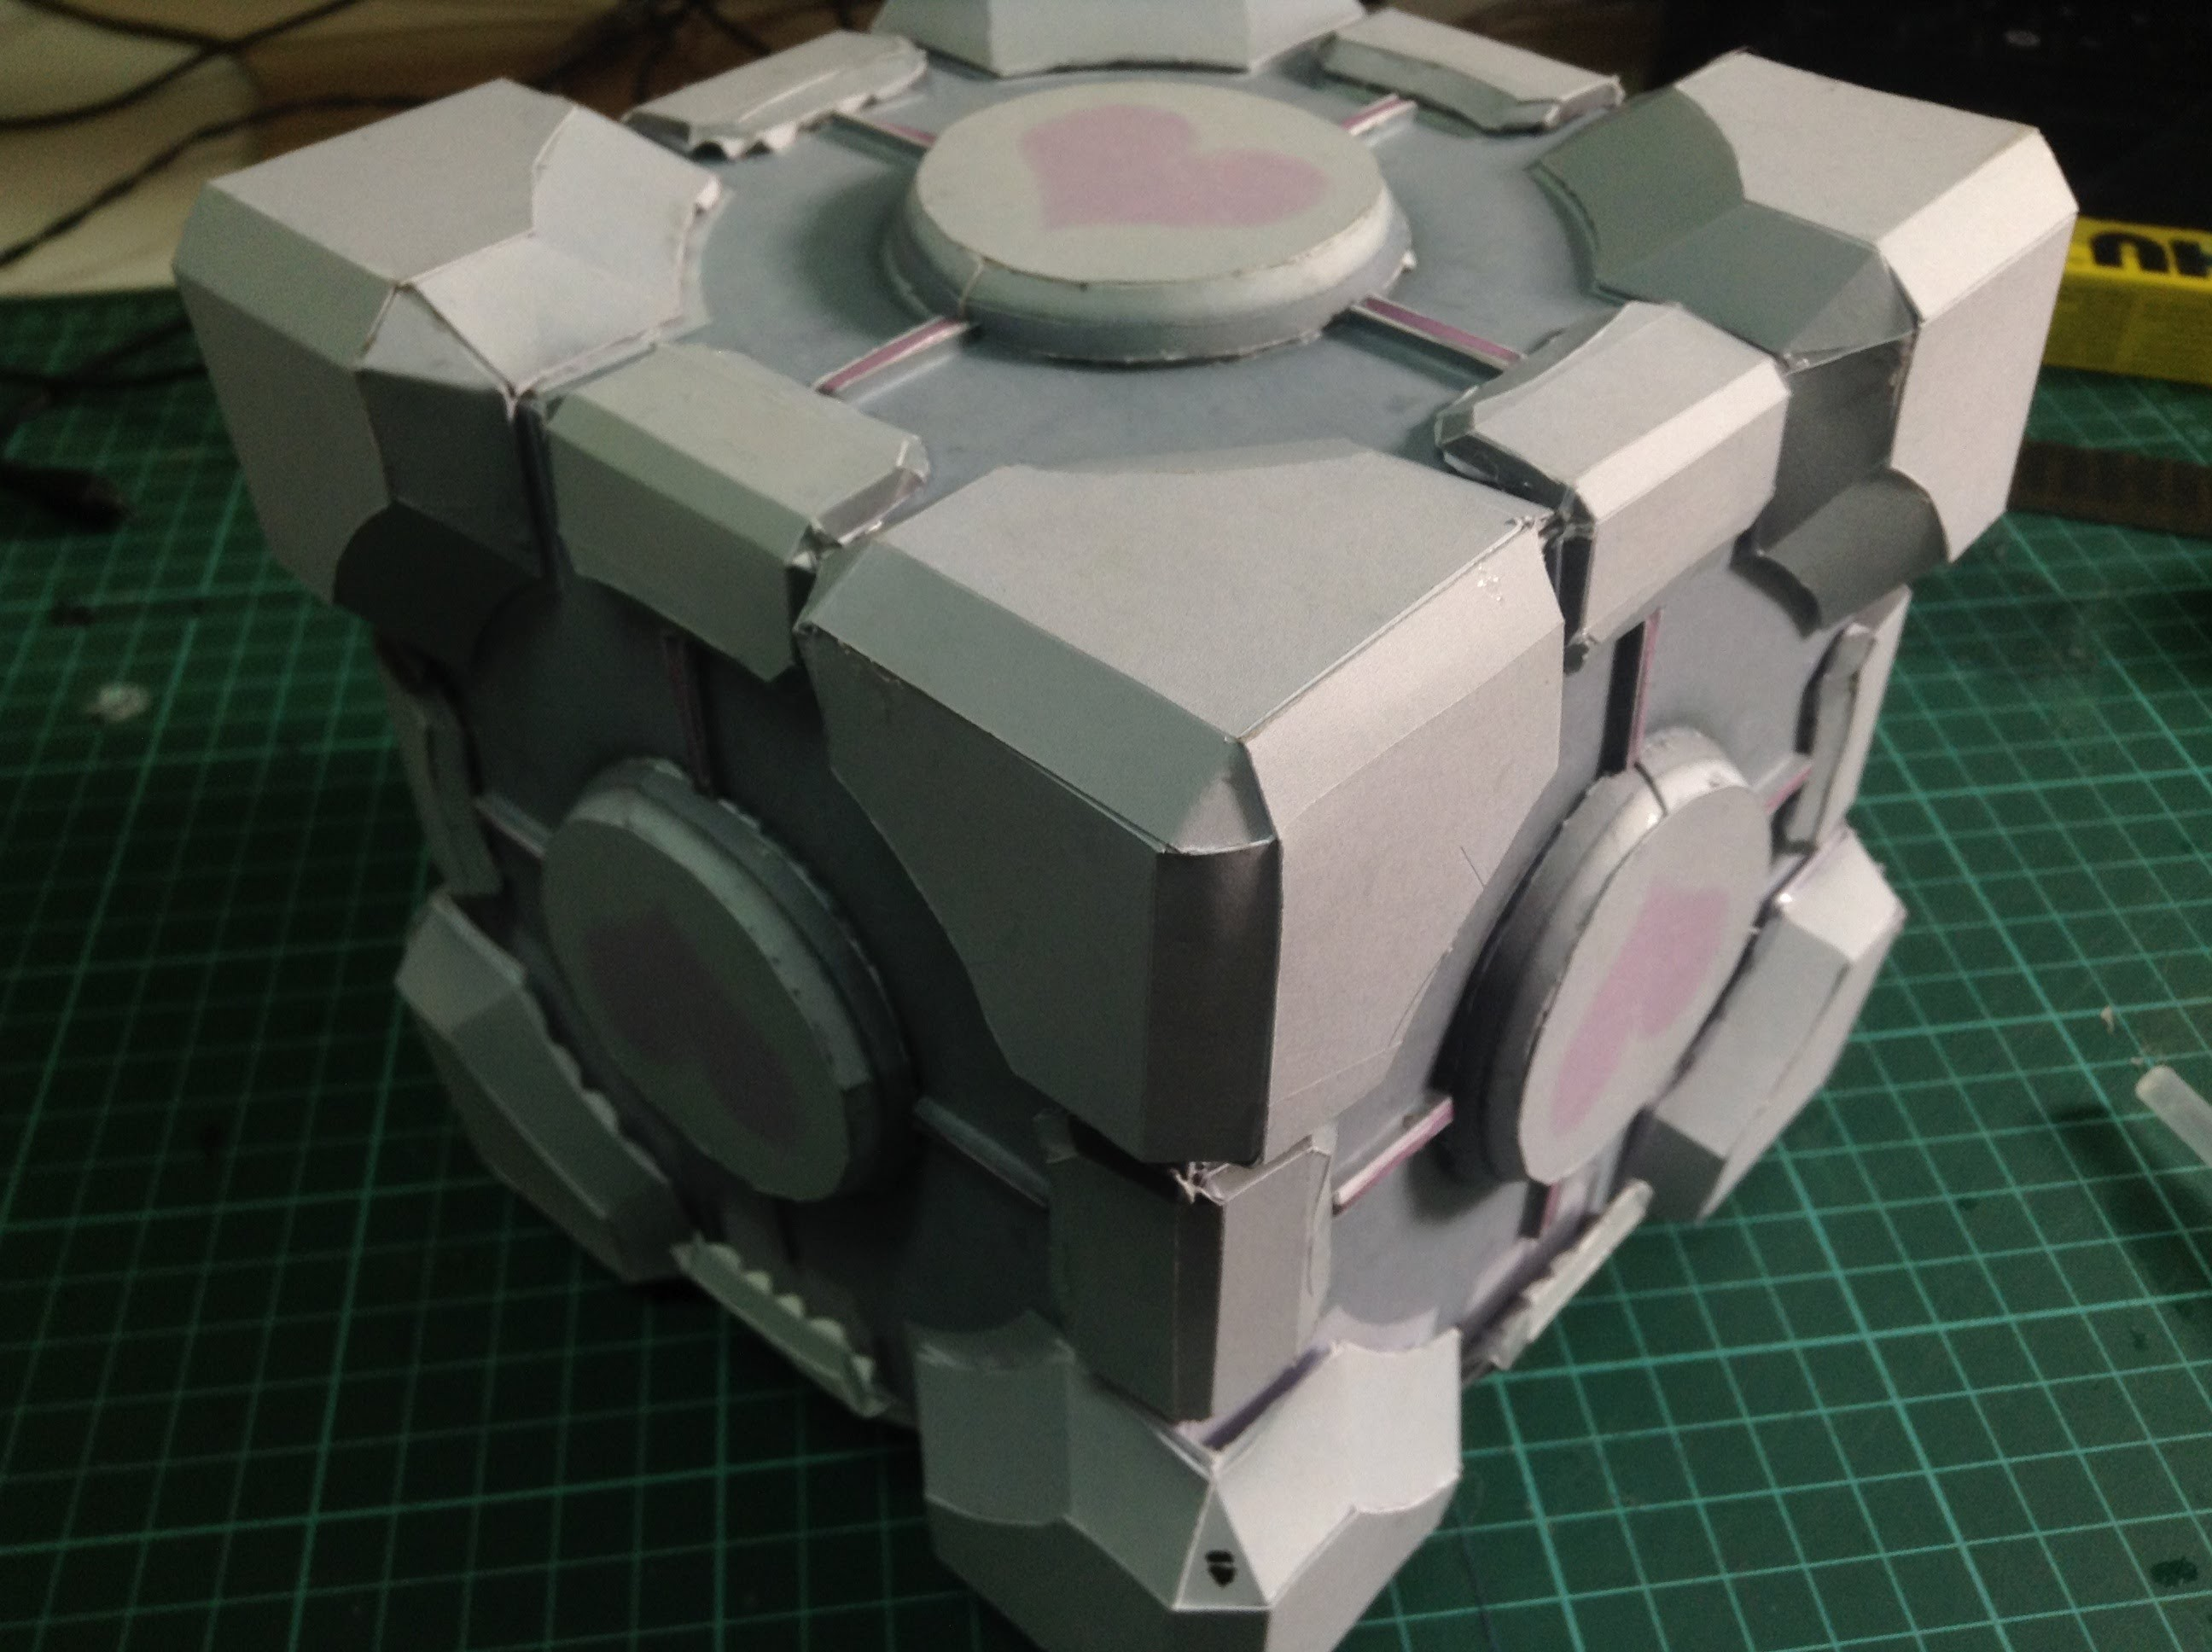 Weighted Companion Cube Papercraft Tutorial (Span subs)